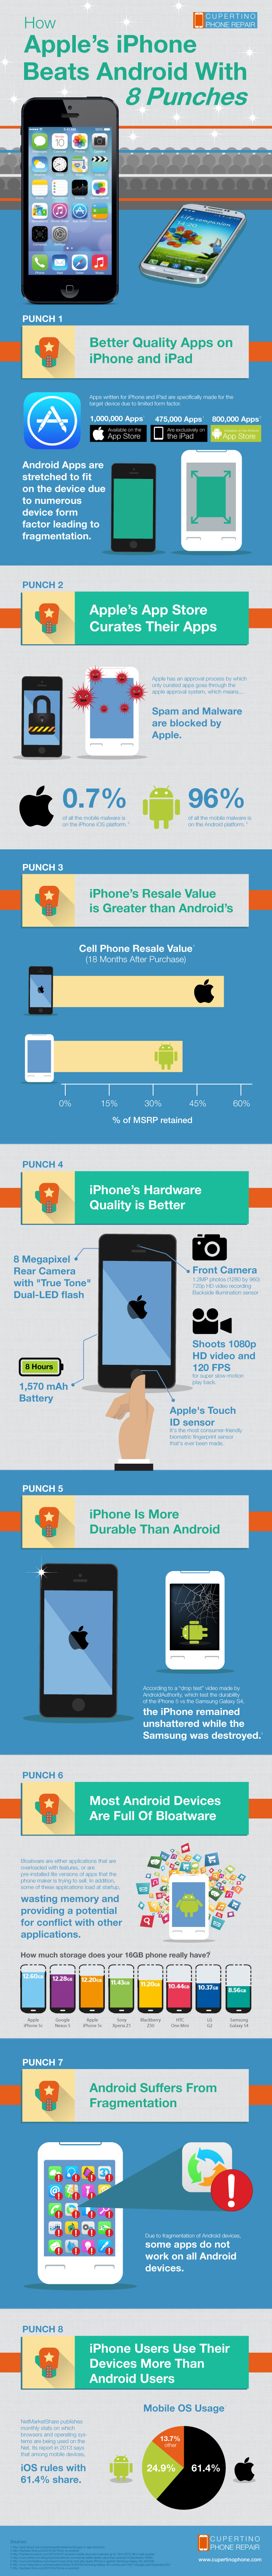 Cupertino_iPhone_Android_3